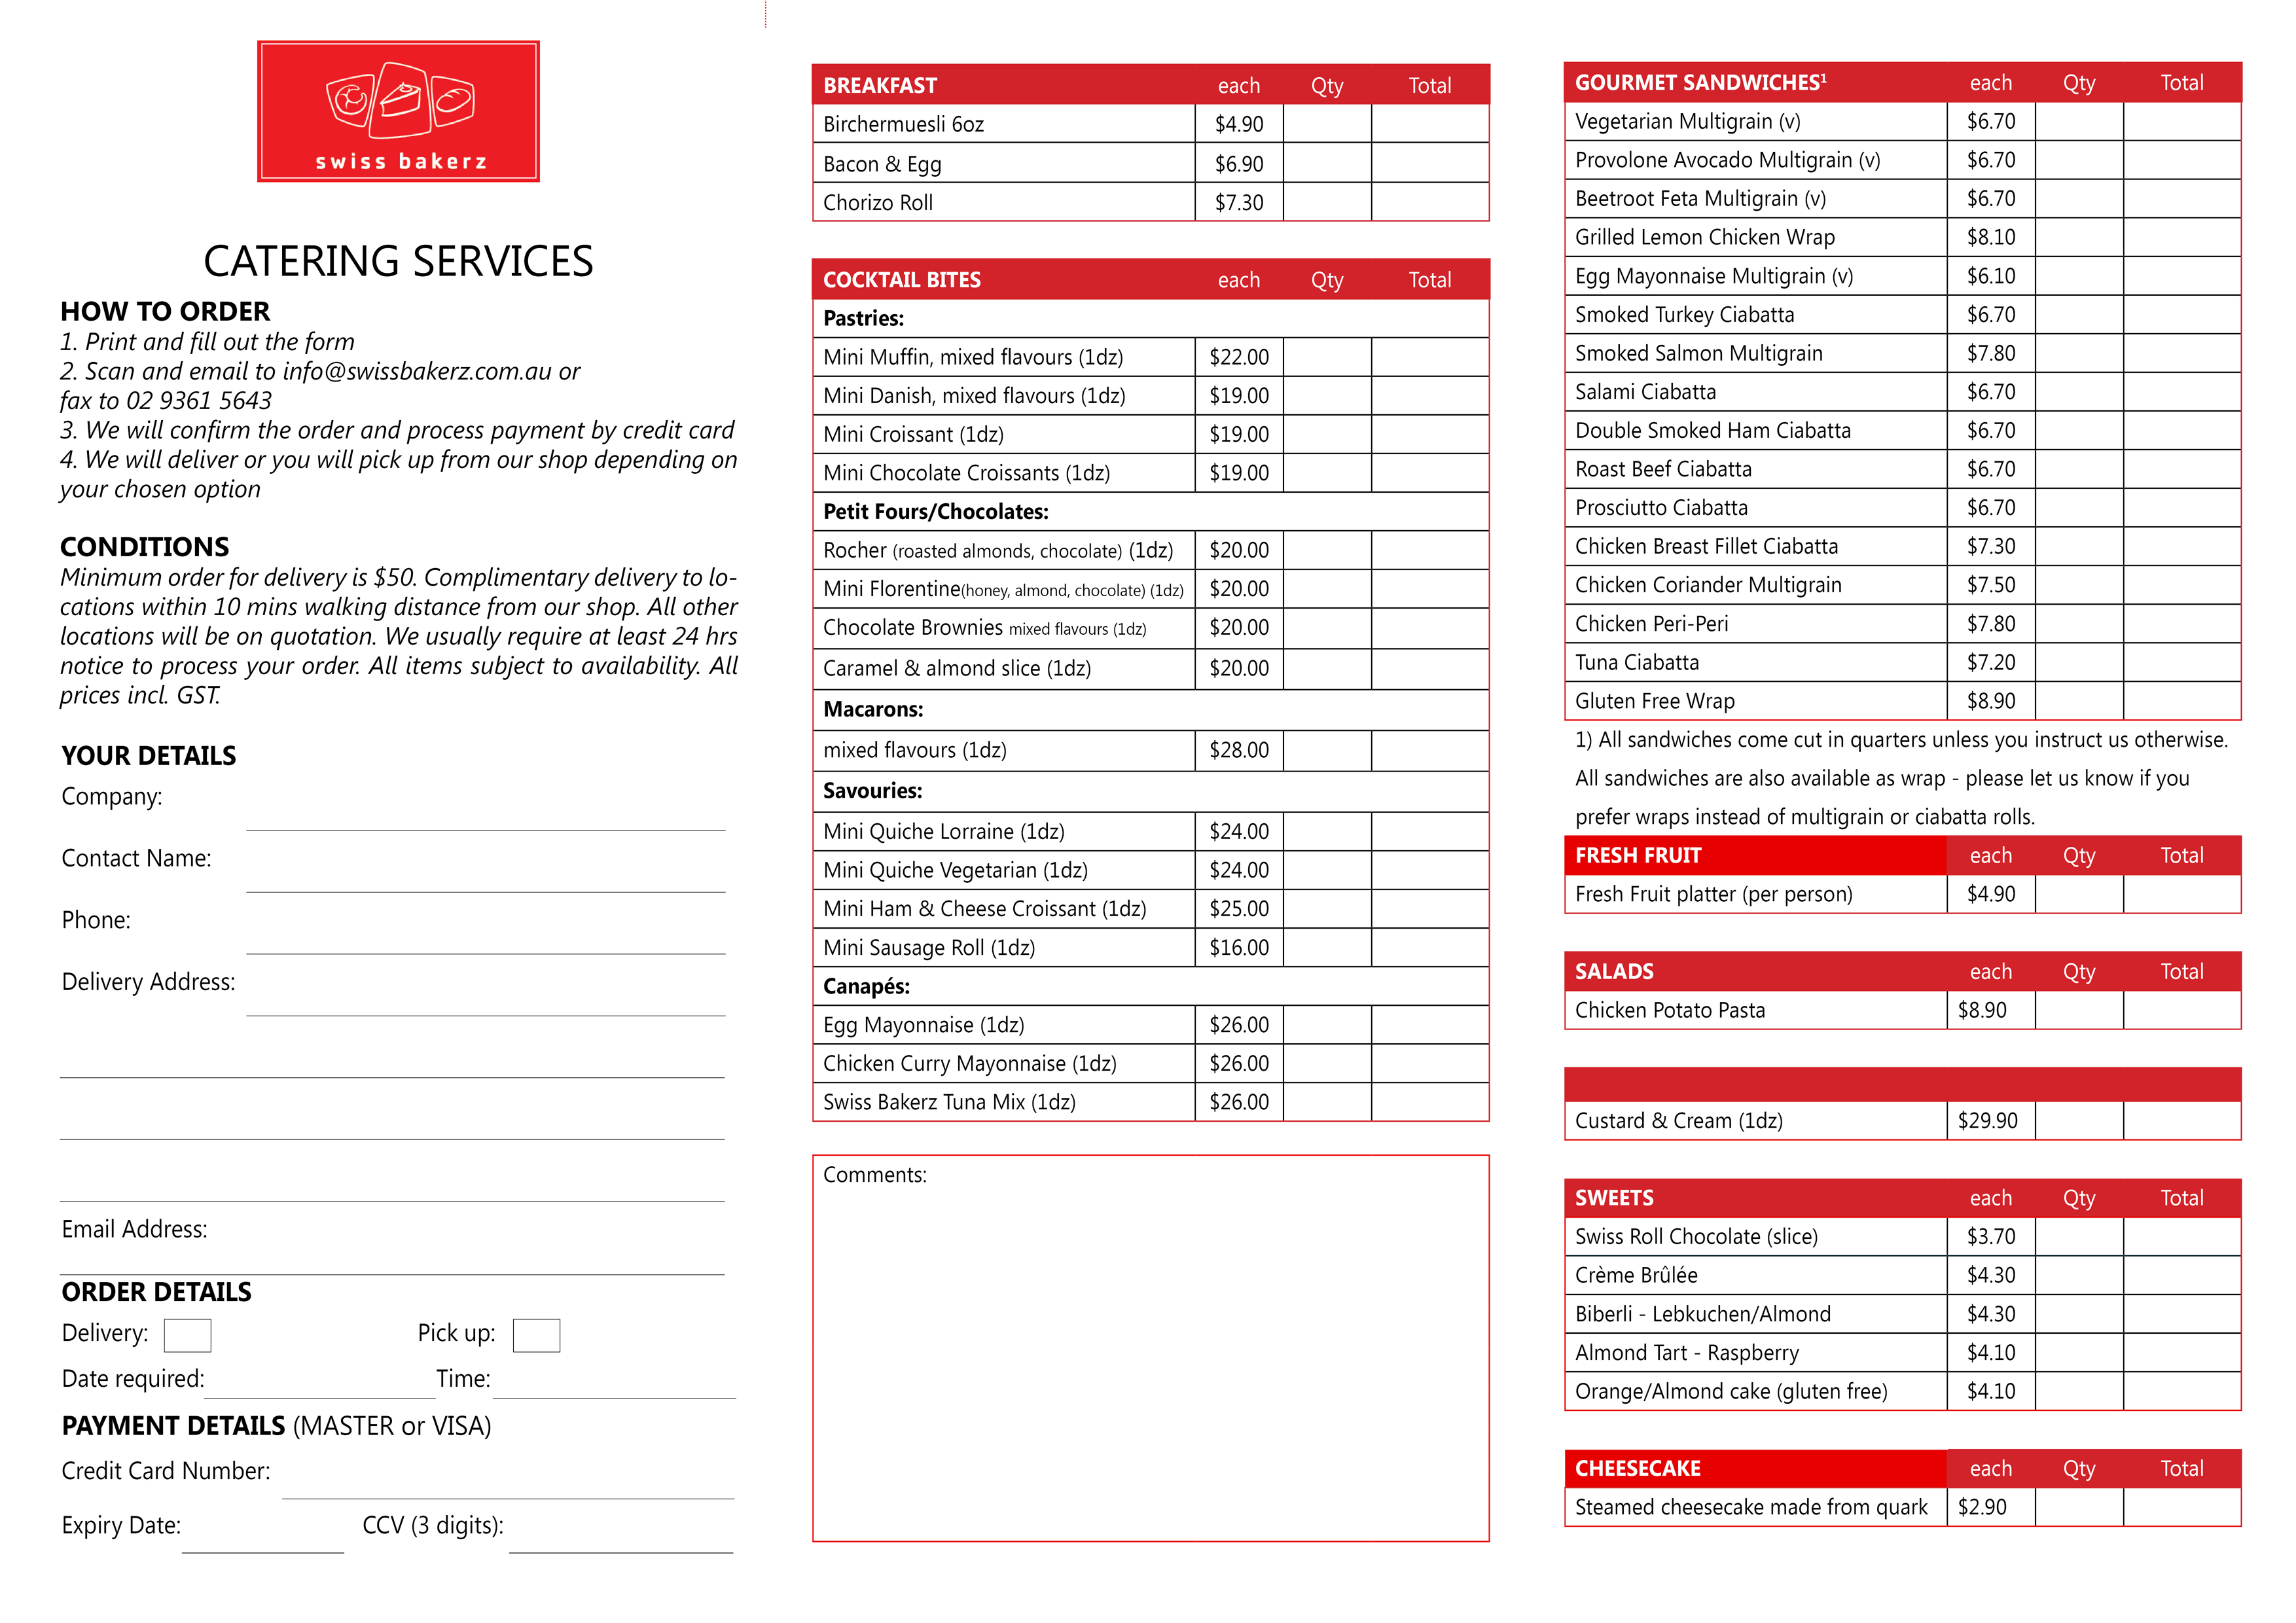 Swiss Bakerz Catering order form